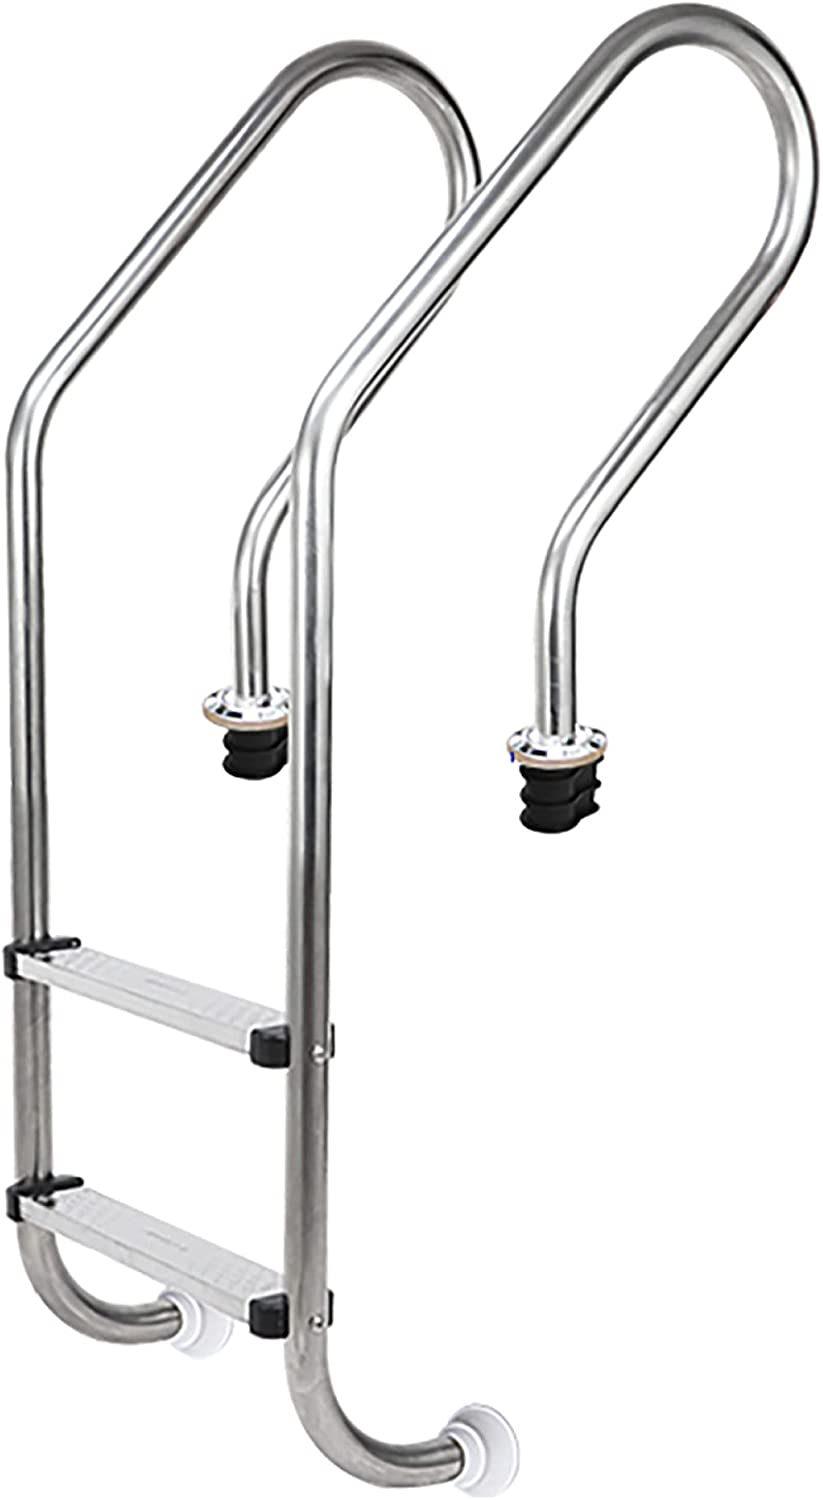 Swimming Pool Sale special price Ladder 2 Stainless Handr Super-cheap Step Steel